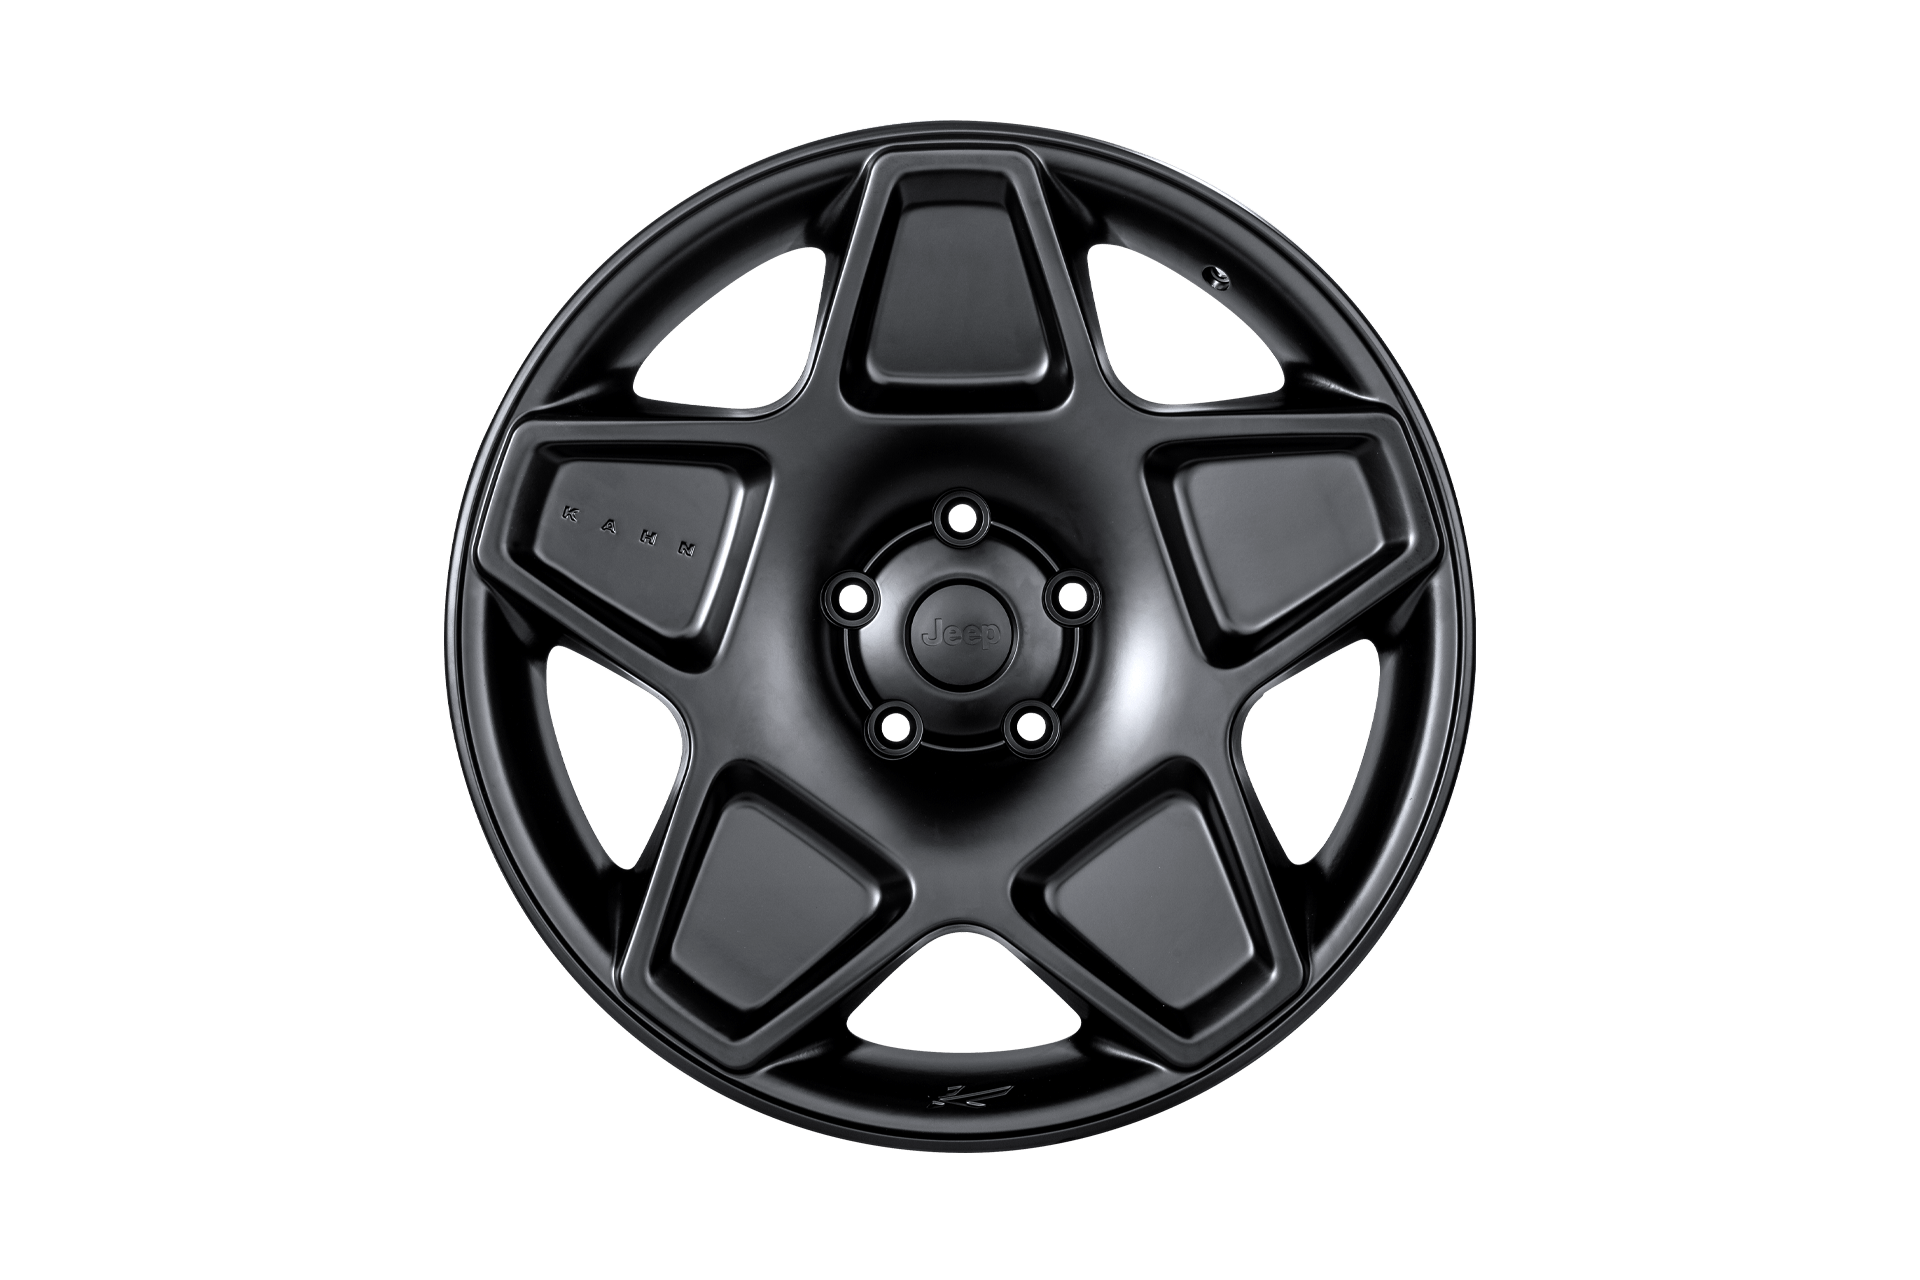 Jeep Wrangler Jl (2018-Present) Mondial Retro Light Alloy Wheels by Chelsea Truck Company - Image 2764